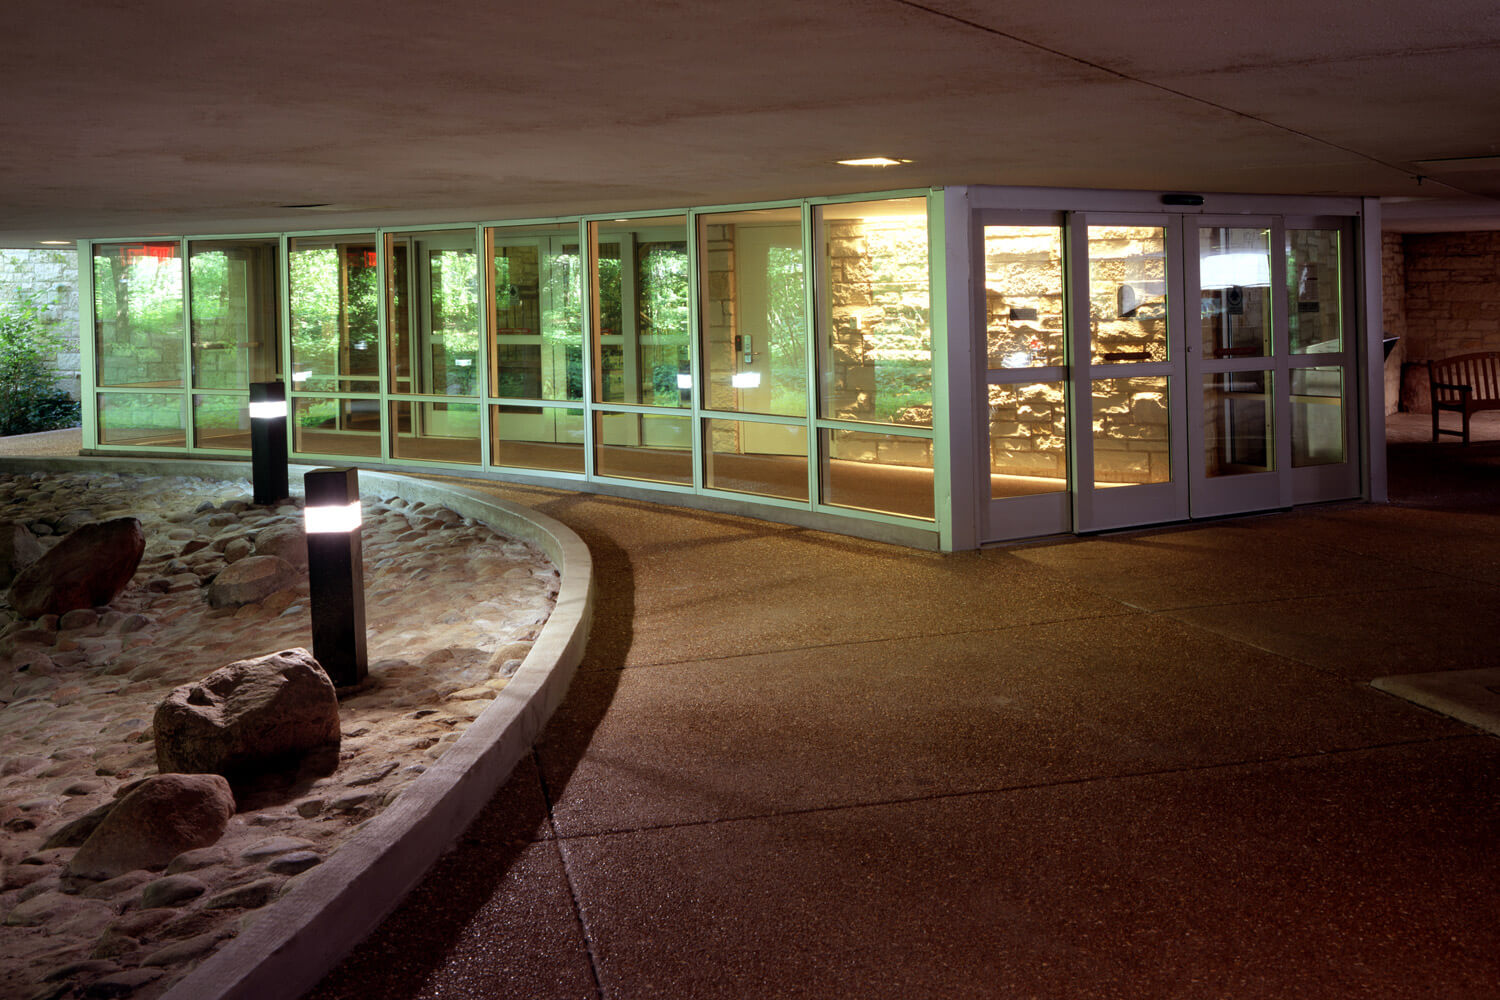 Highland Park Library Interior Renovation exterior at night